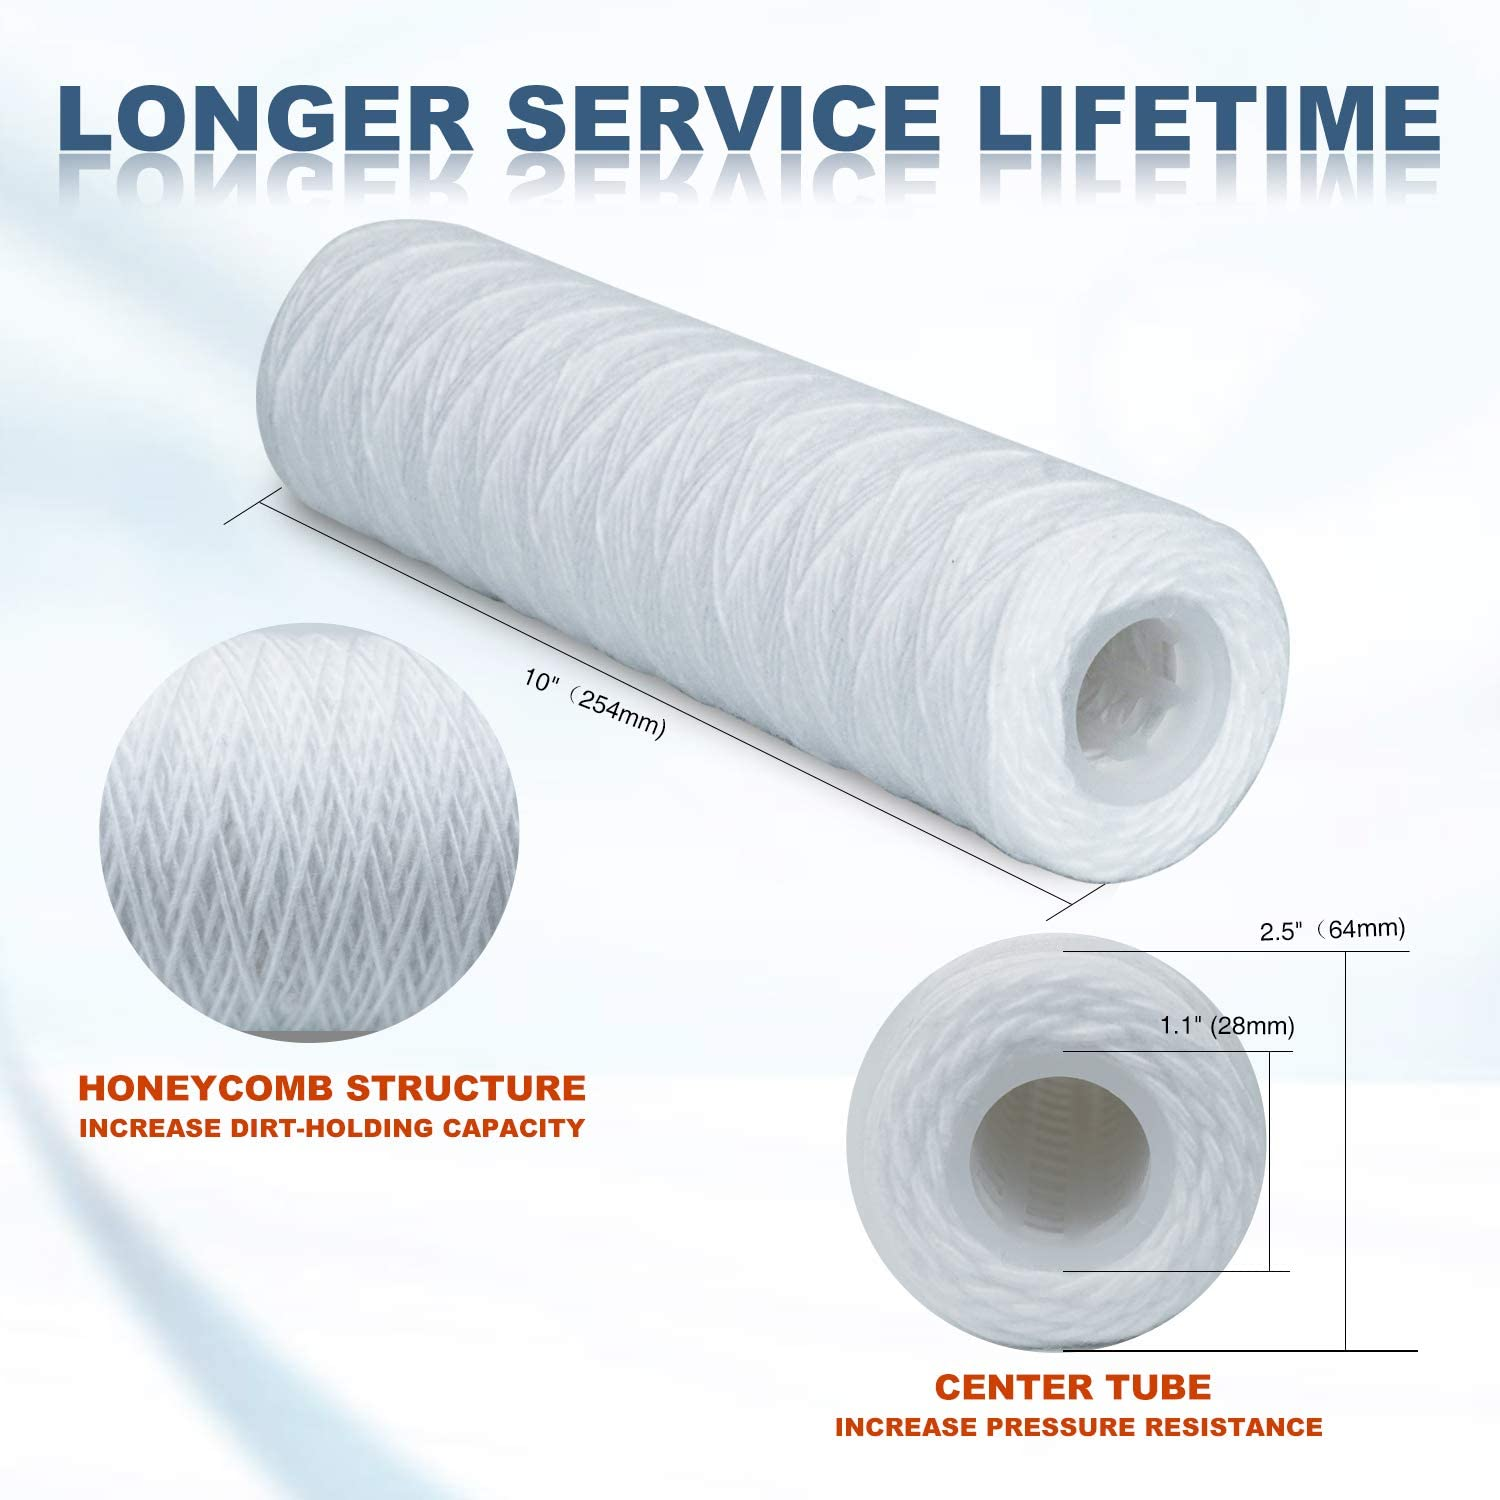 Membrane Solutions 20 Micron String Wound Water Filter Replacement Cartridge Sediment Filters for Well Water 10x2.5-25 Pack